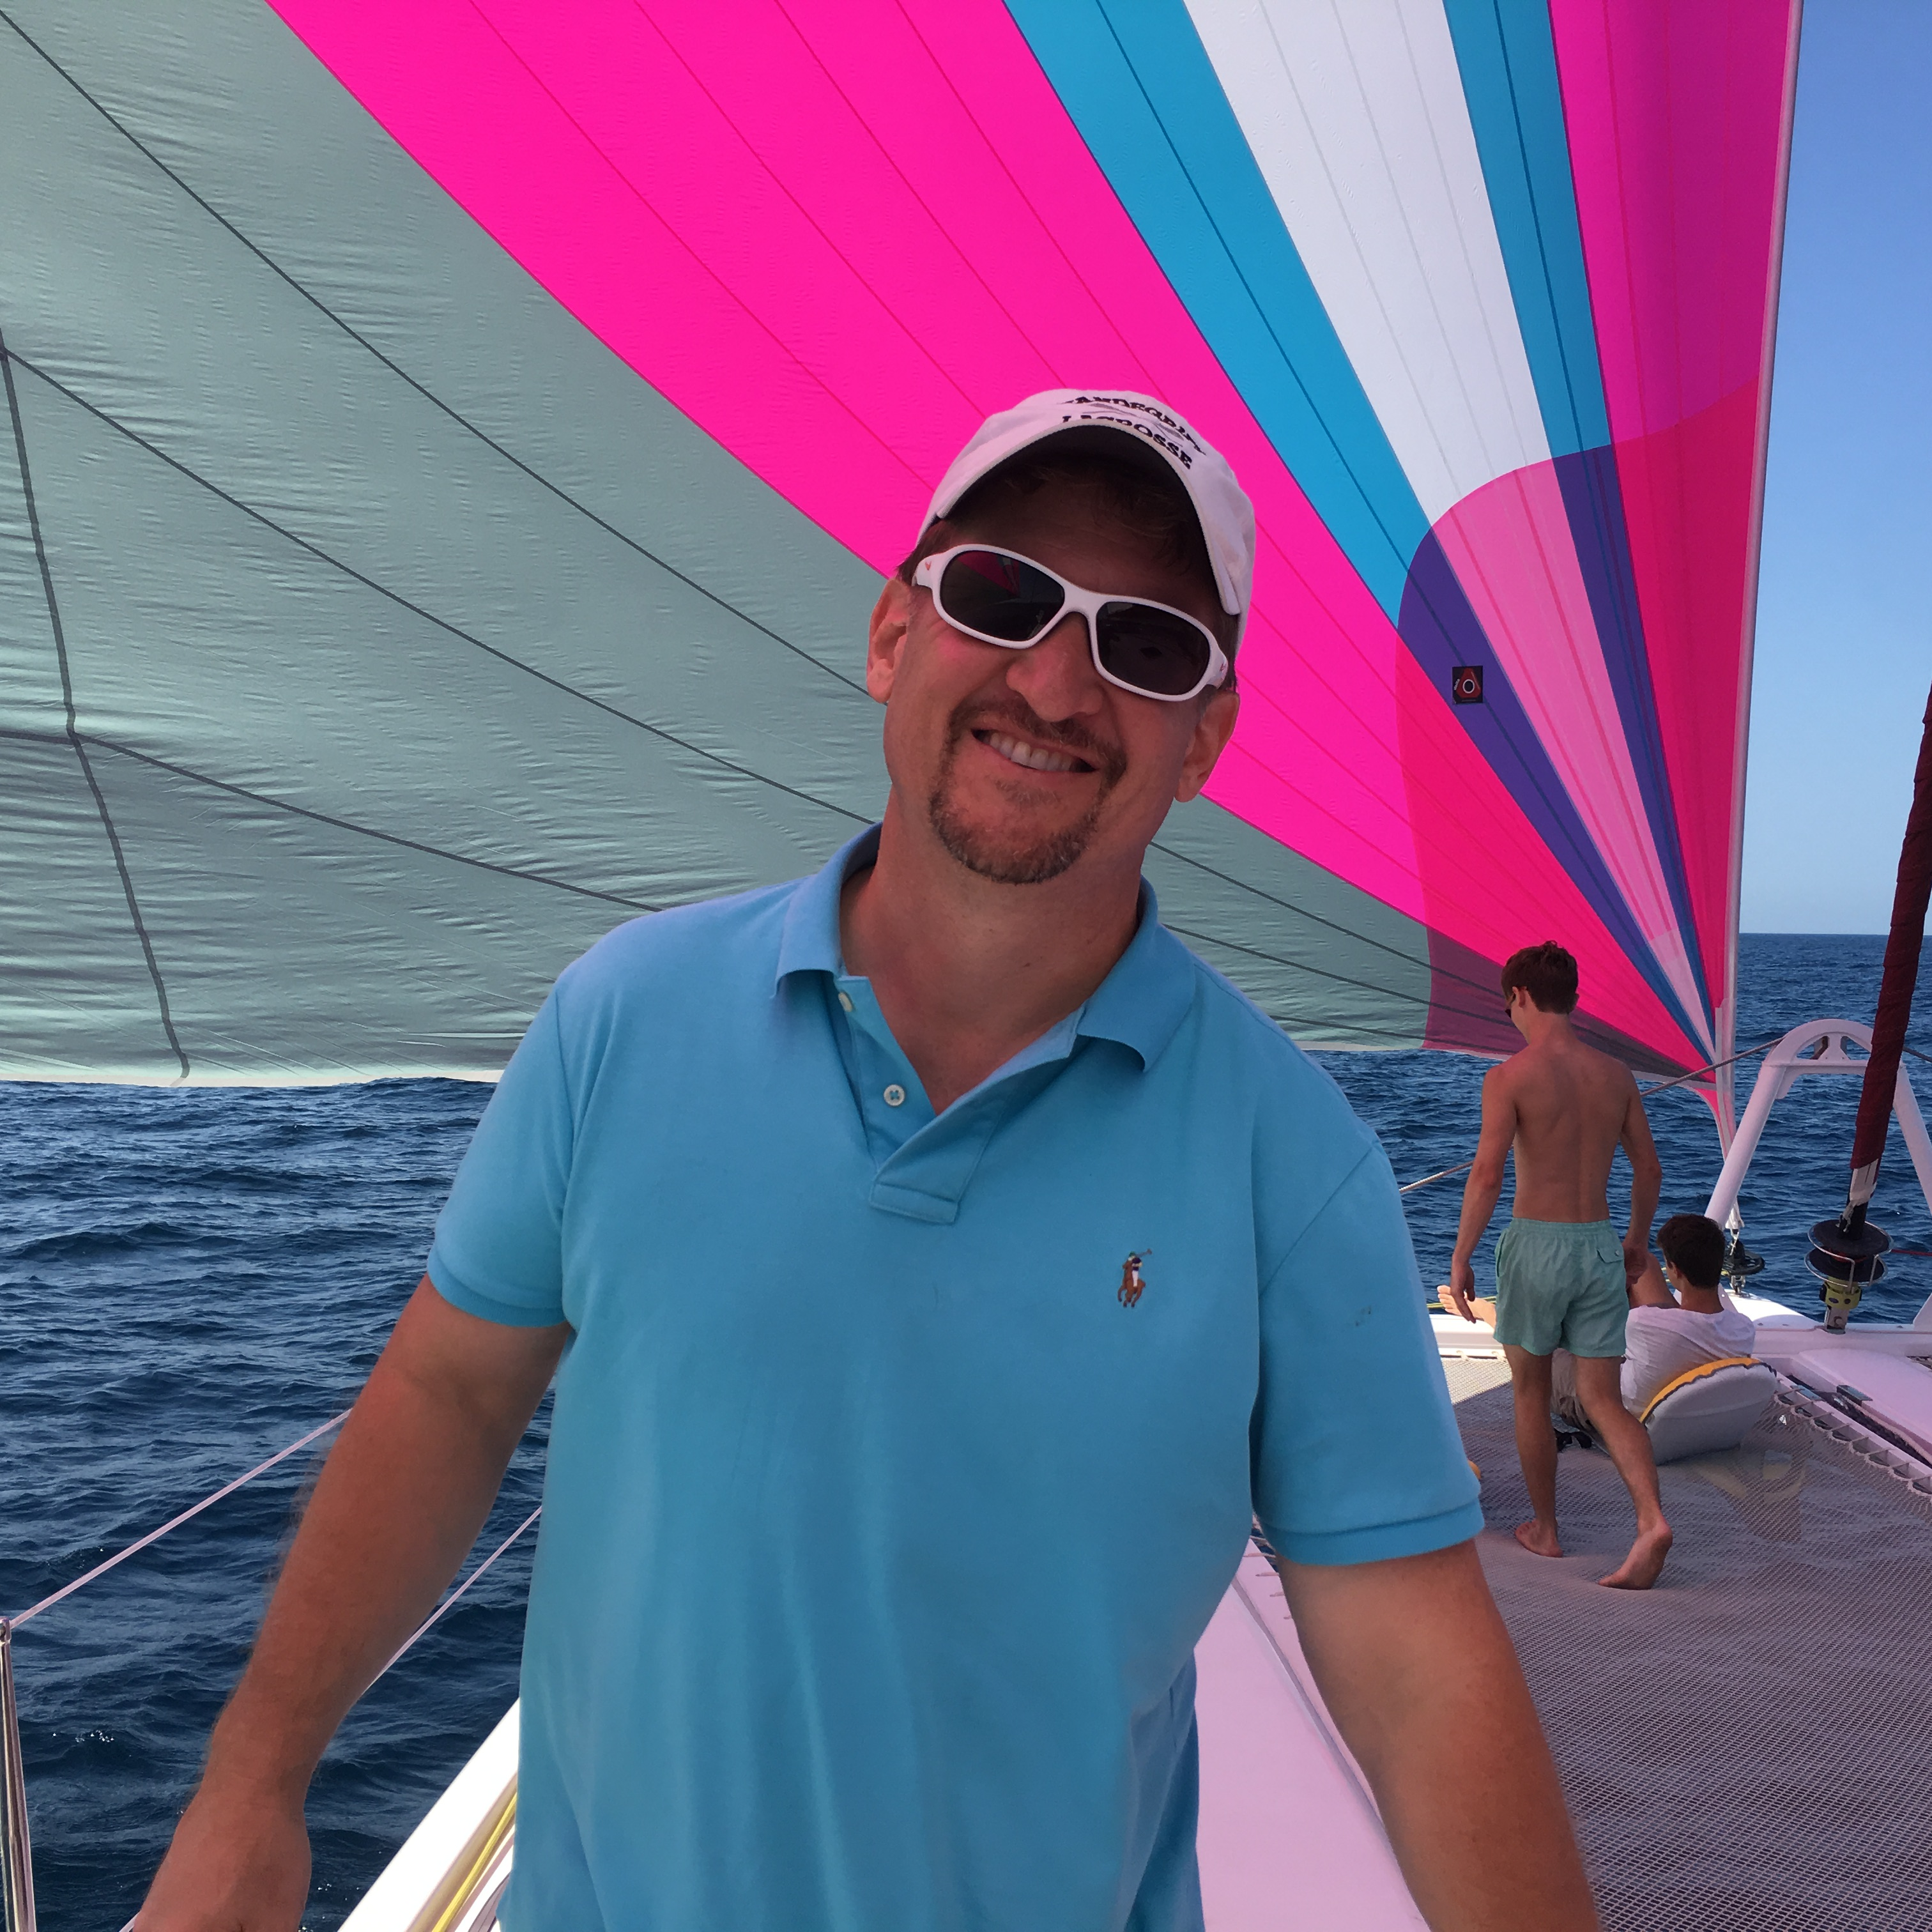 Ultralight fenders, watermaker problems and dinghy security | Sail